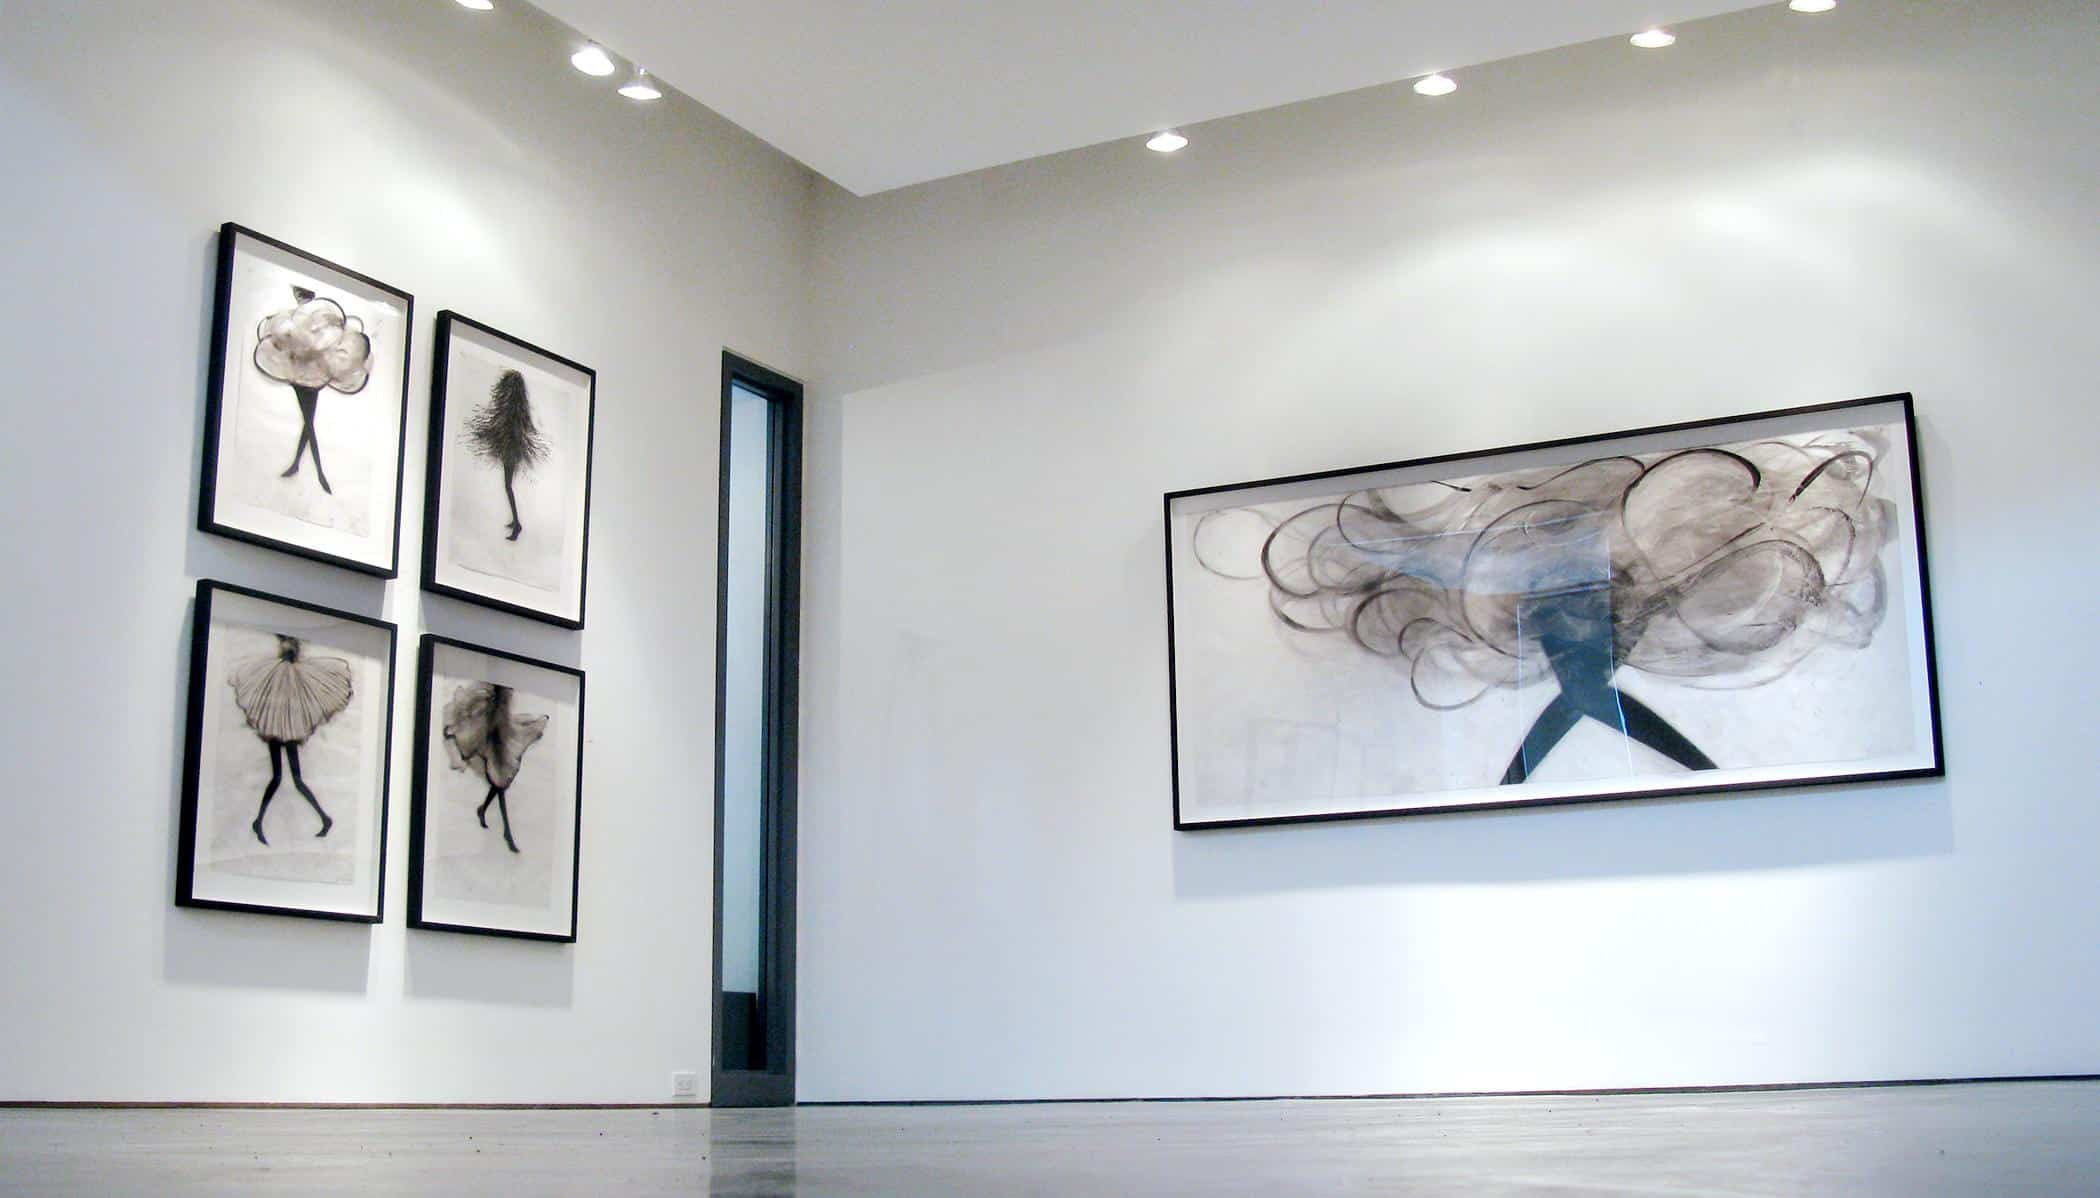 Installation of Cathy Daley, solo exhibition at Newzones Gallery, 2013